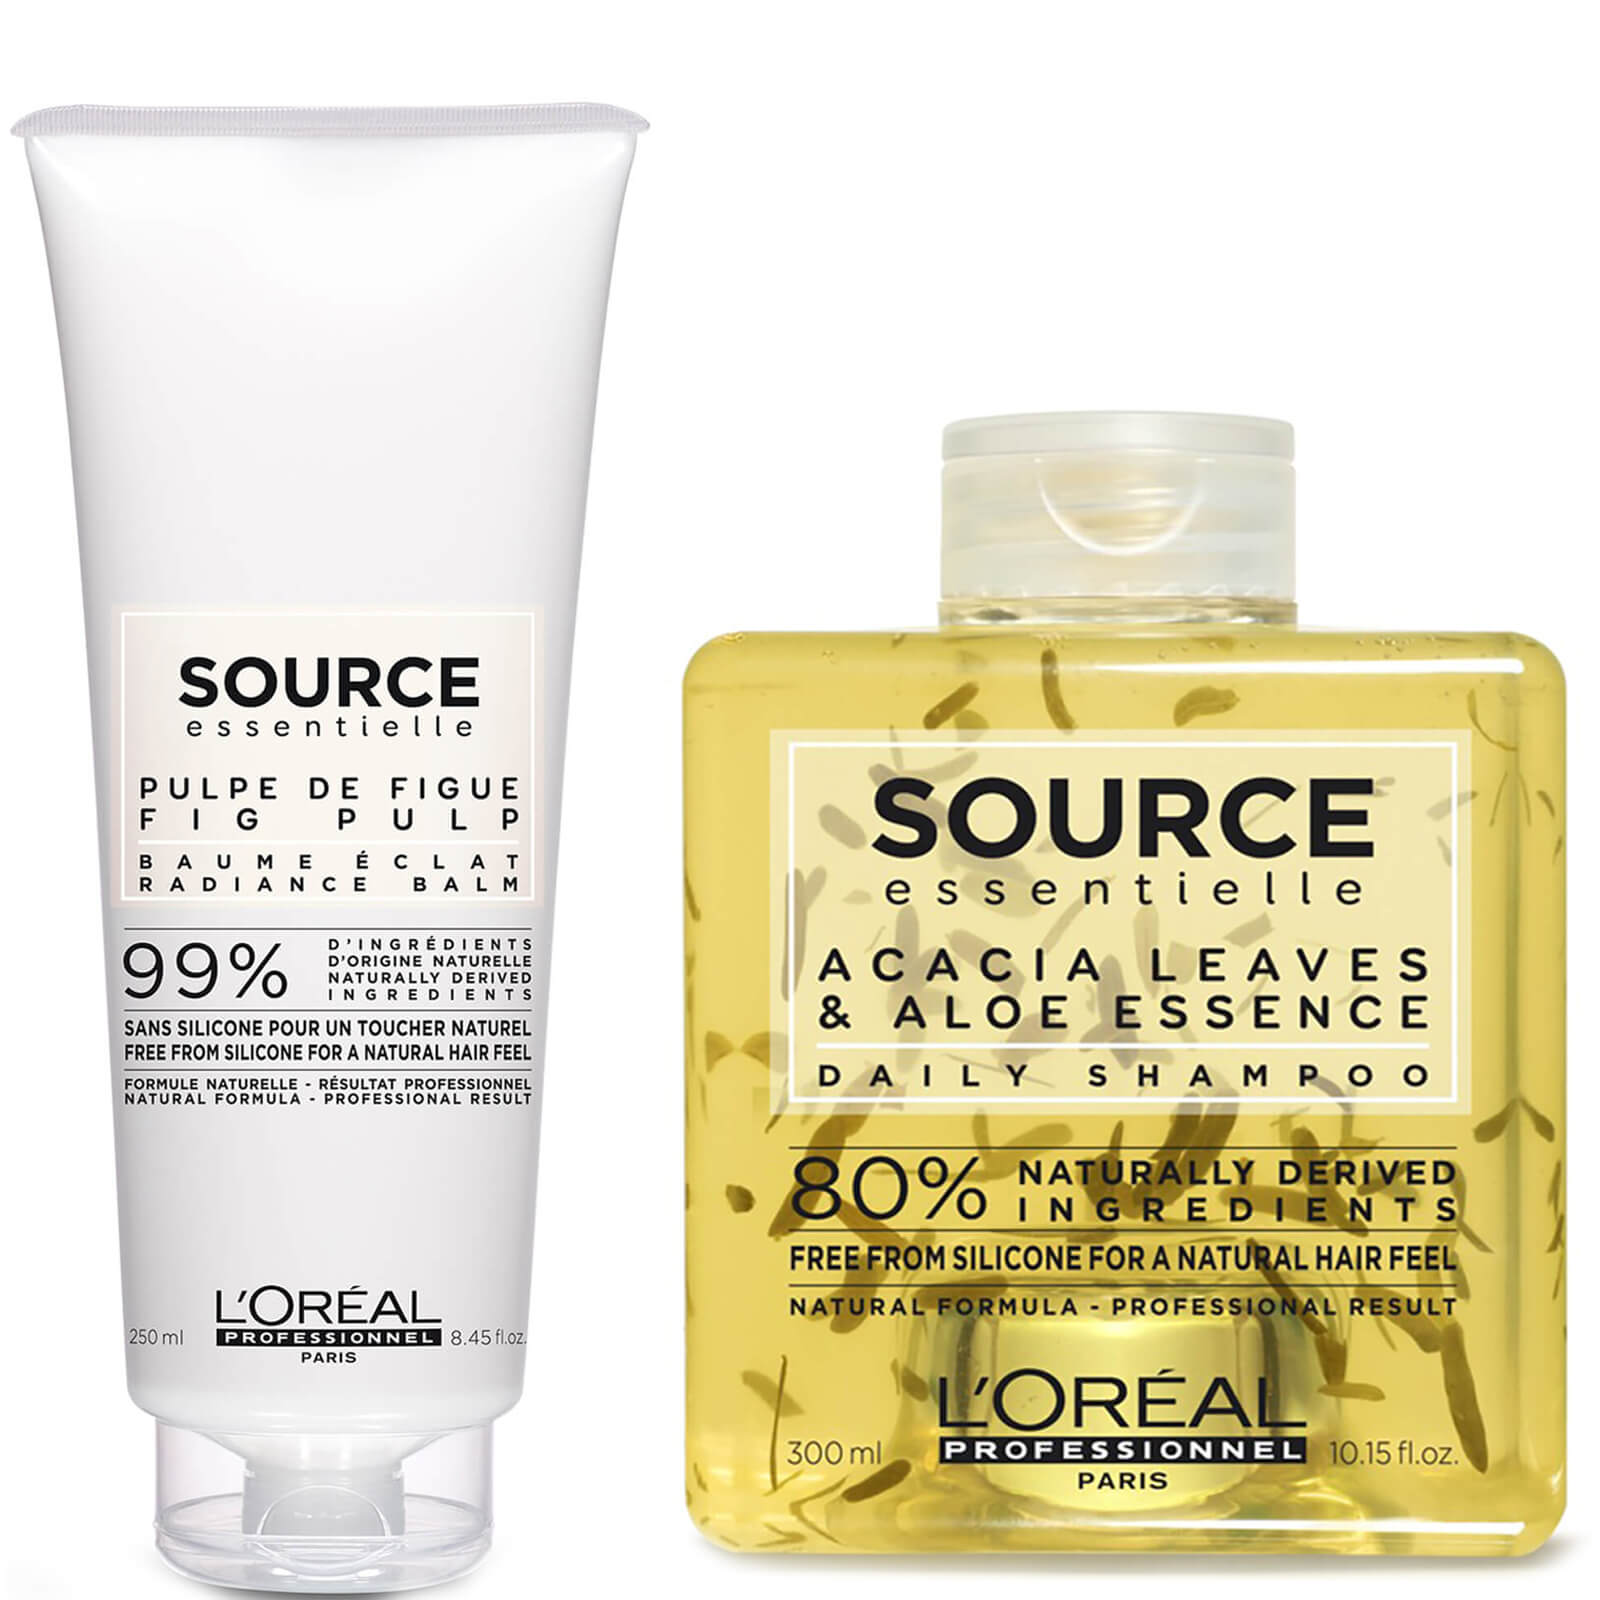 source essentielle, daily shampoo, natural shampoo, vegan, paraben free, sulfate free, healthy hair care